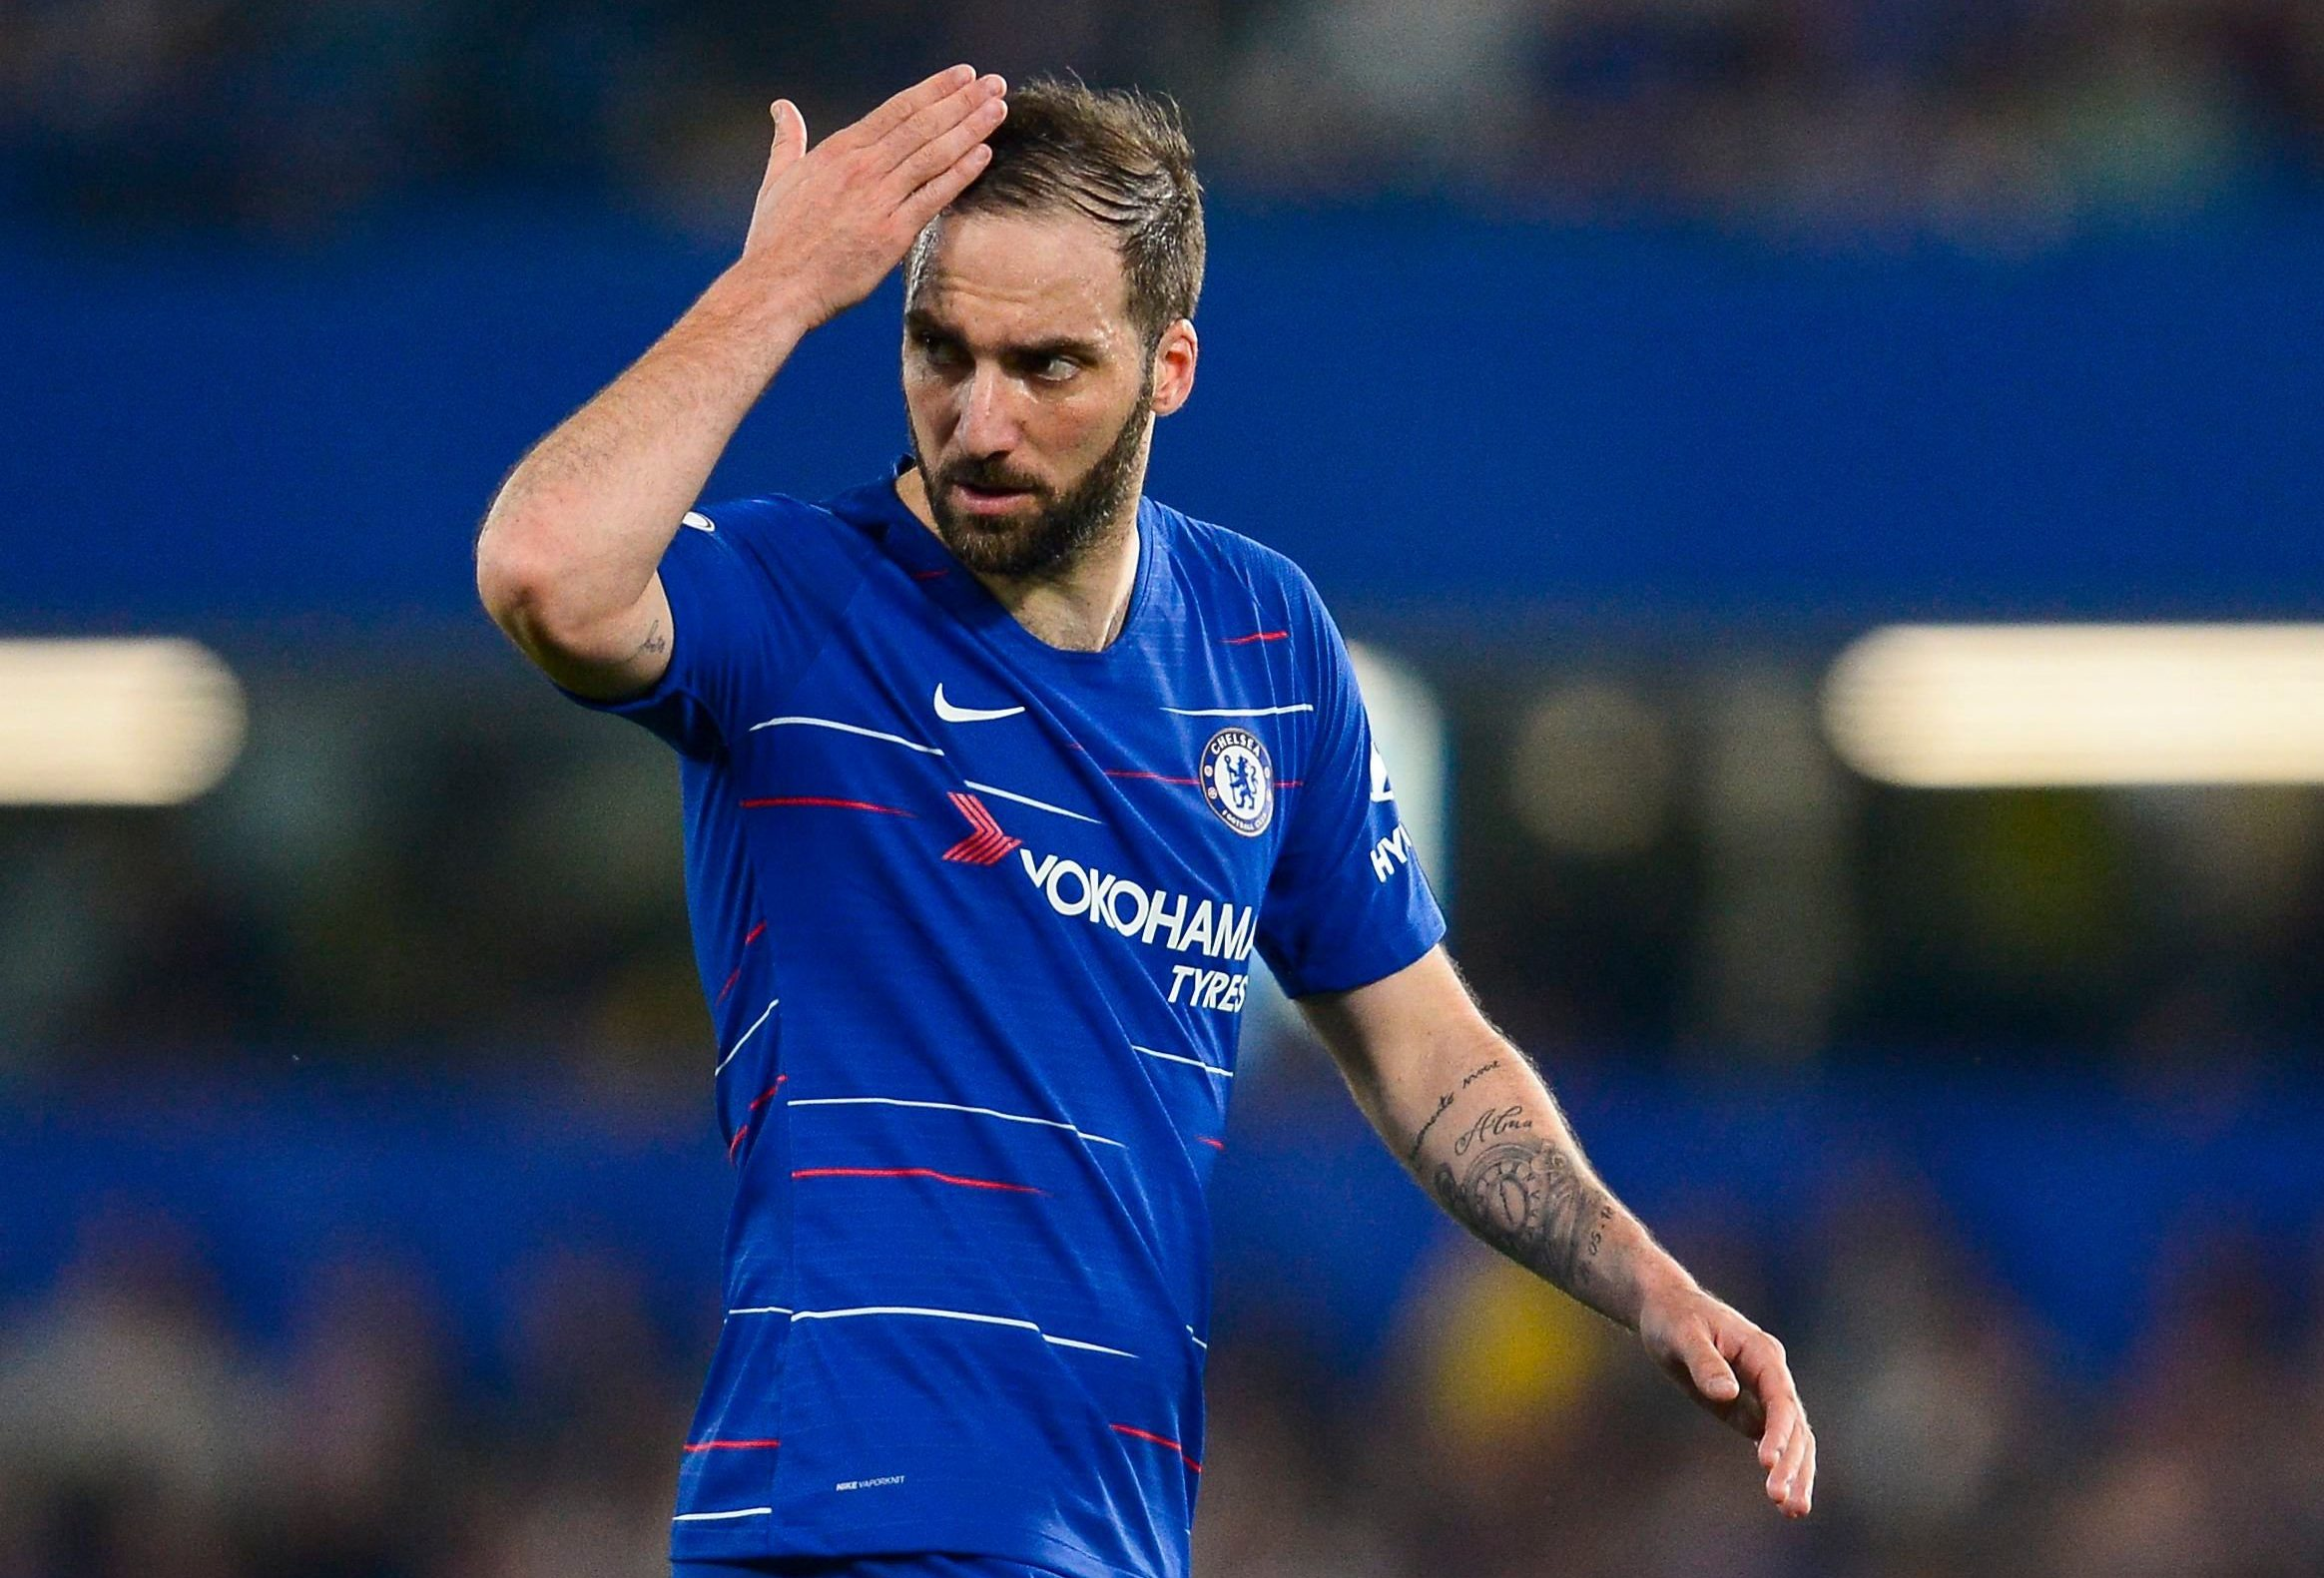 Gonzalo Higuain of Chelsea Chelsea v Burnley, Premier League, Football, Stamford Bridge, London, UK - 22 Apr 2019